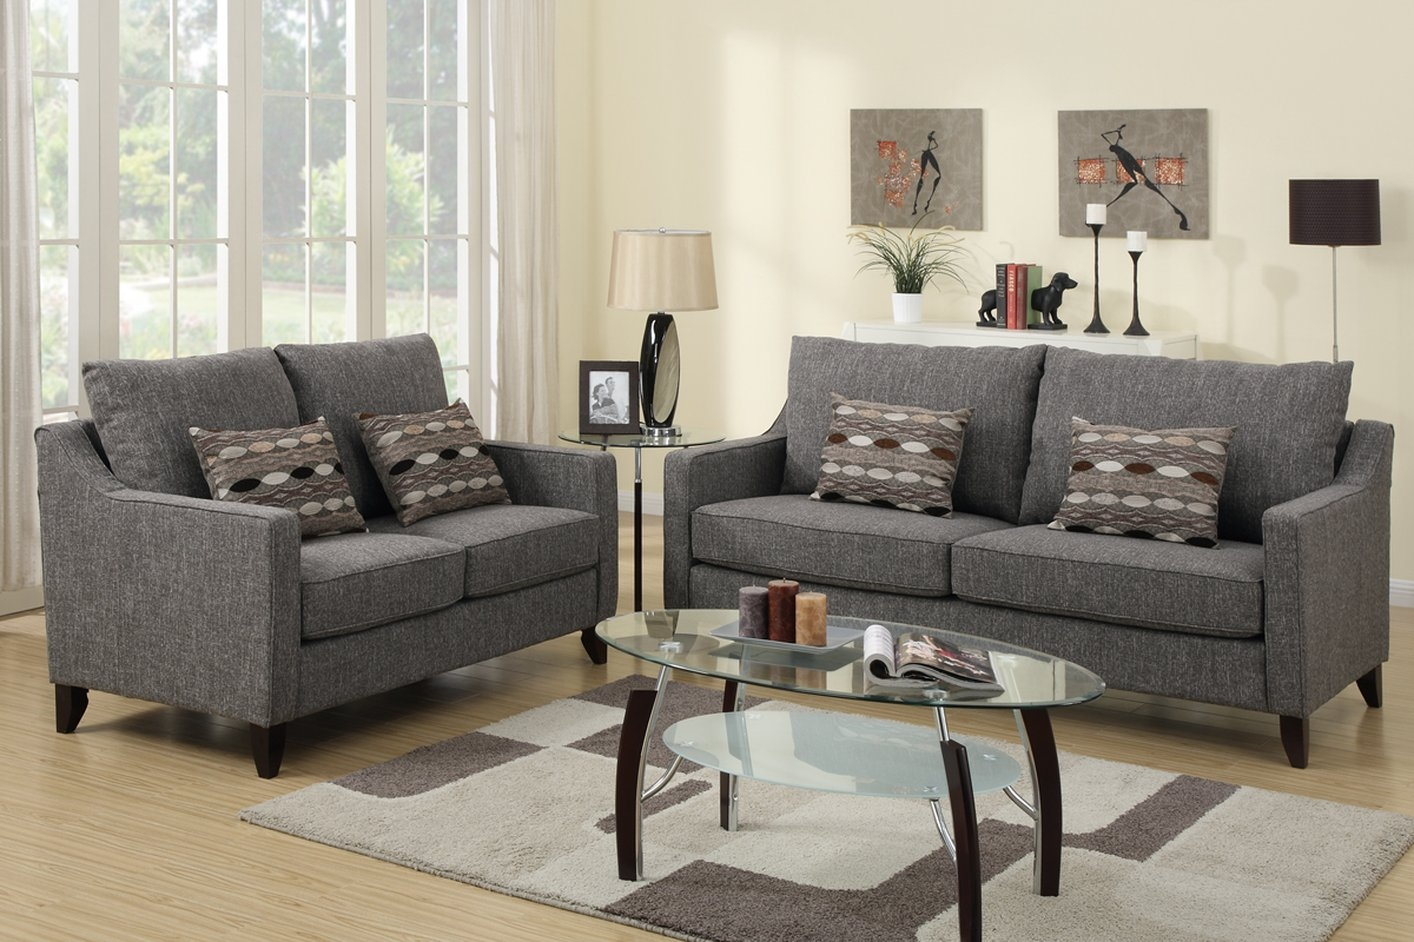 60 Loveseat Sofa Berkely Tufted Sofa And Loveseat Set Sofa Sets Throughout Sofa Loveseat And Chairs (Image 1 of 15)